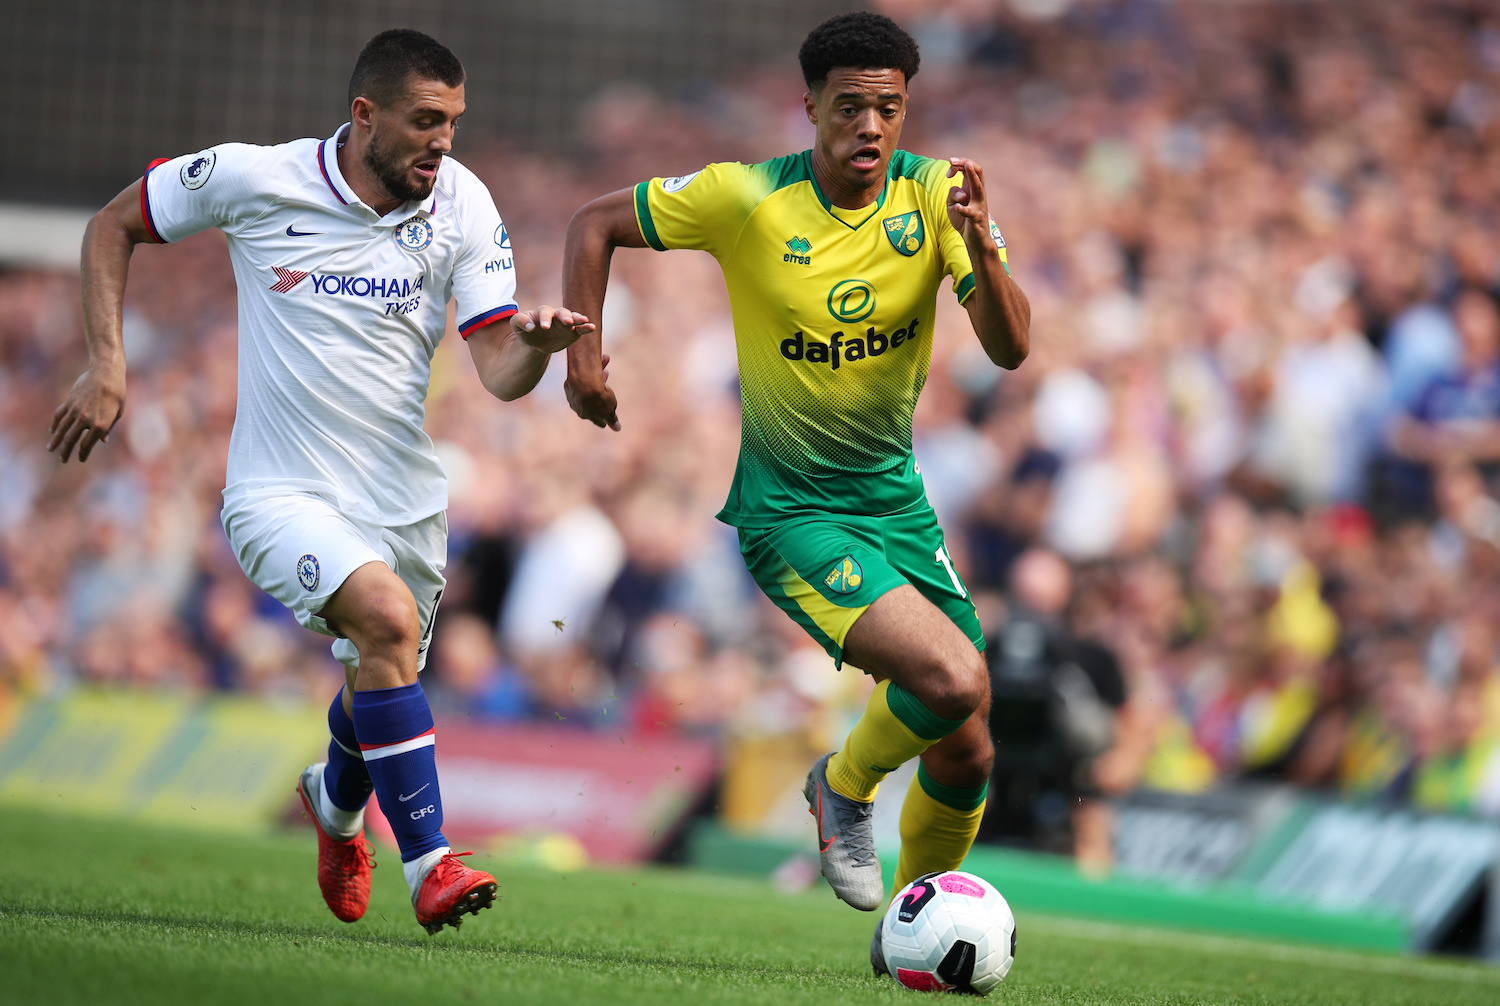 Norwich City's Jamal Lewis is pursued by Chelsea's Mateo Kovacic during their Premier league match at Carrow Road in Norwich on Saturday. (Reuters Photo)